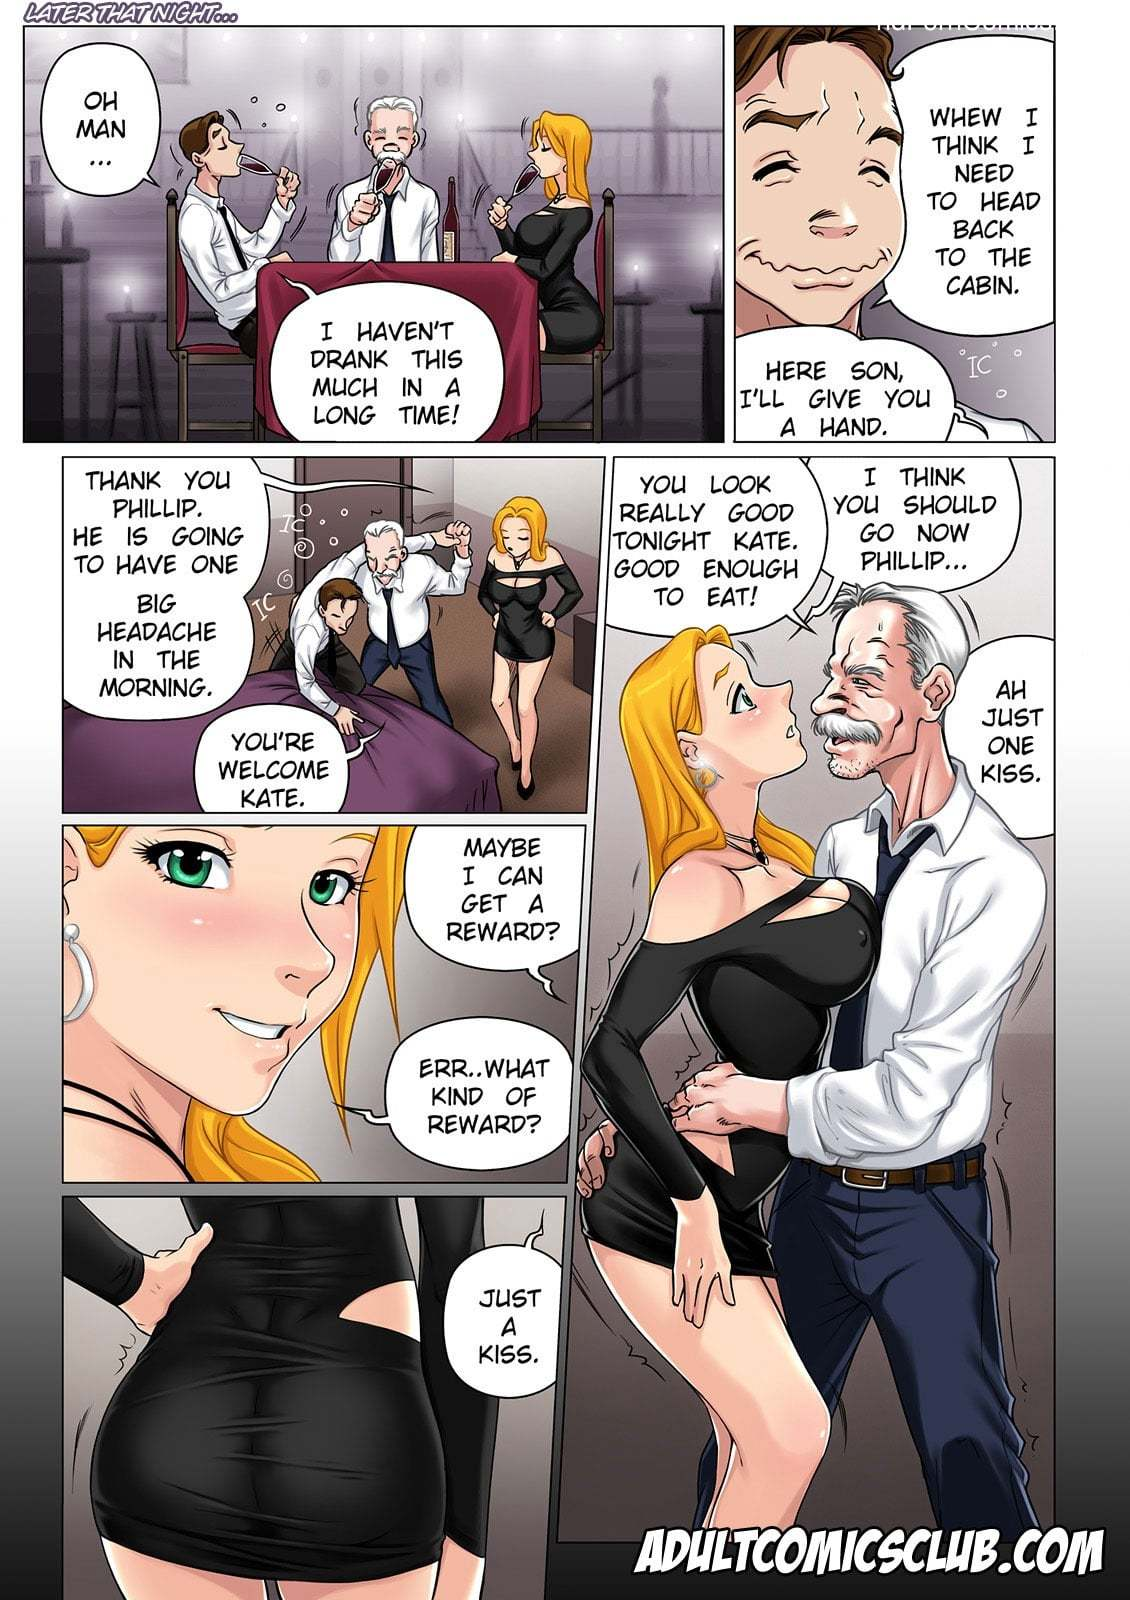 The Horny Stepfather 1-226 free sex comic